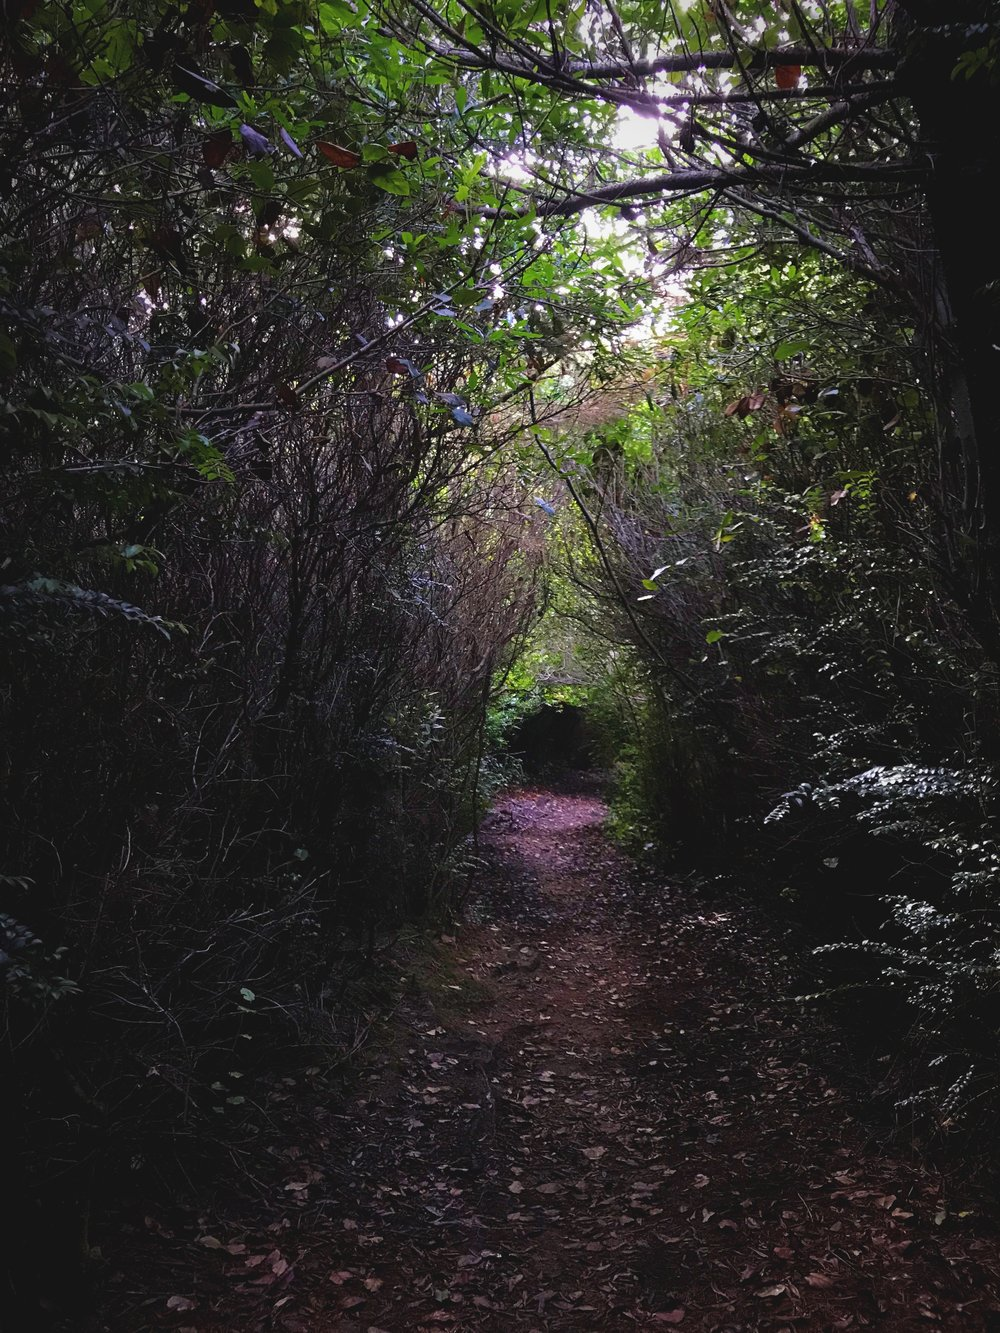 In some places the trees are so dense the trail is a tunnel.